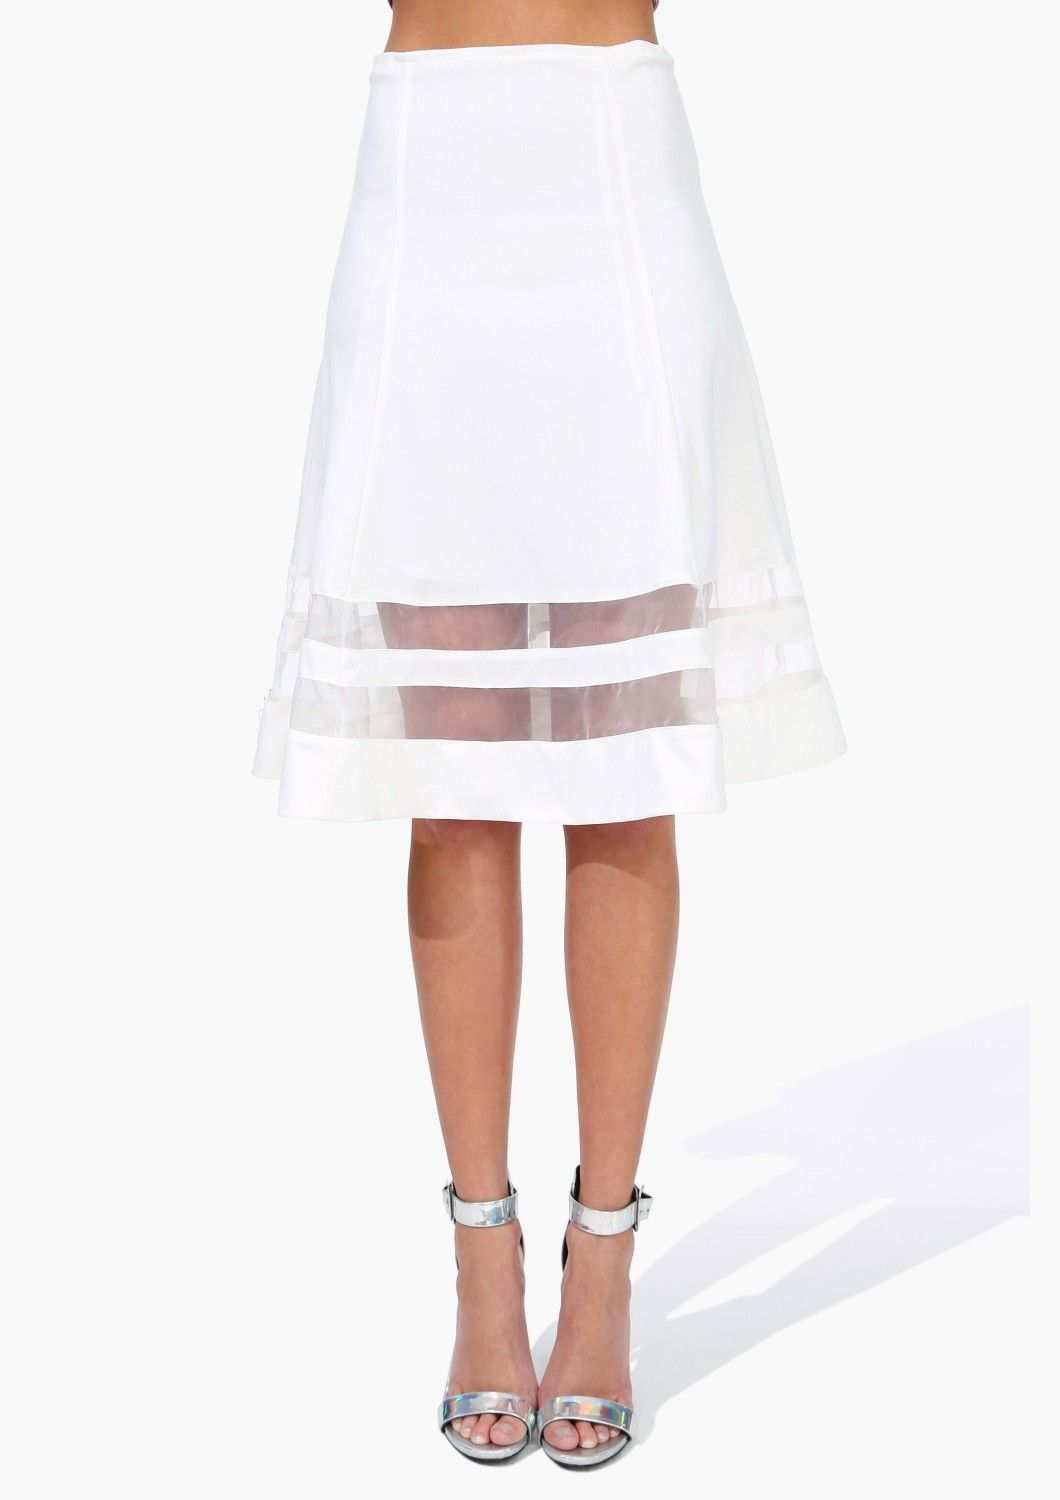 e4b97cb714 See Clearly Skirt